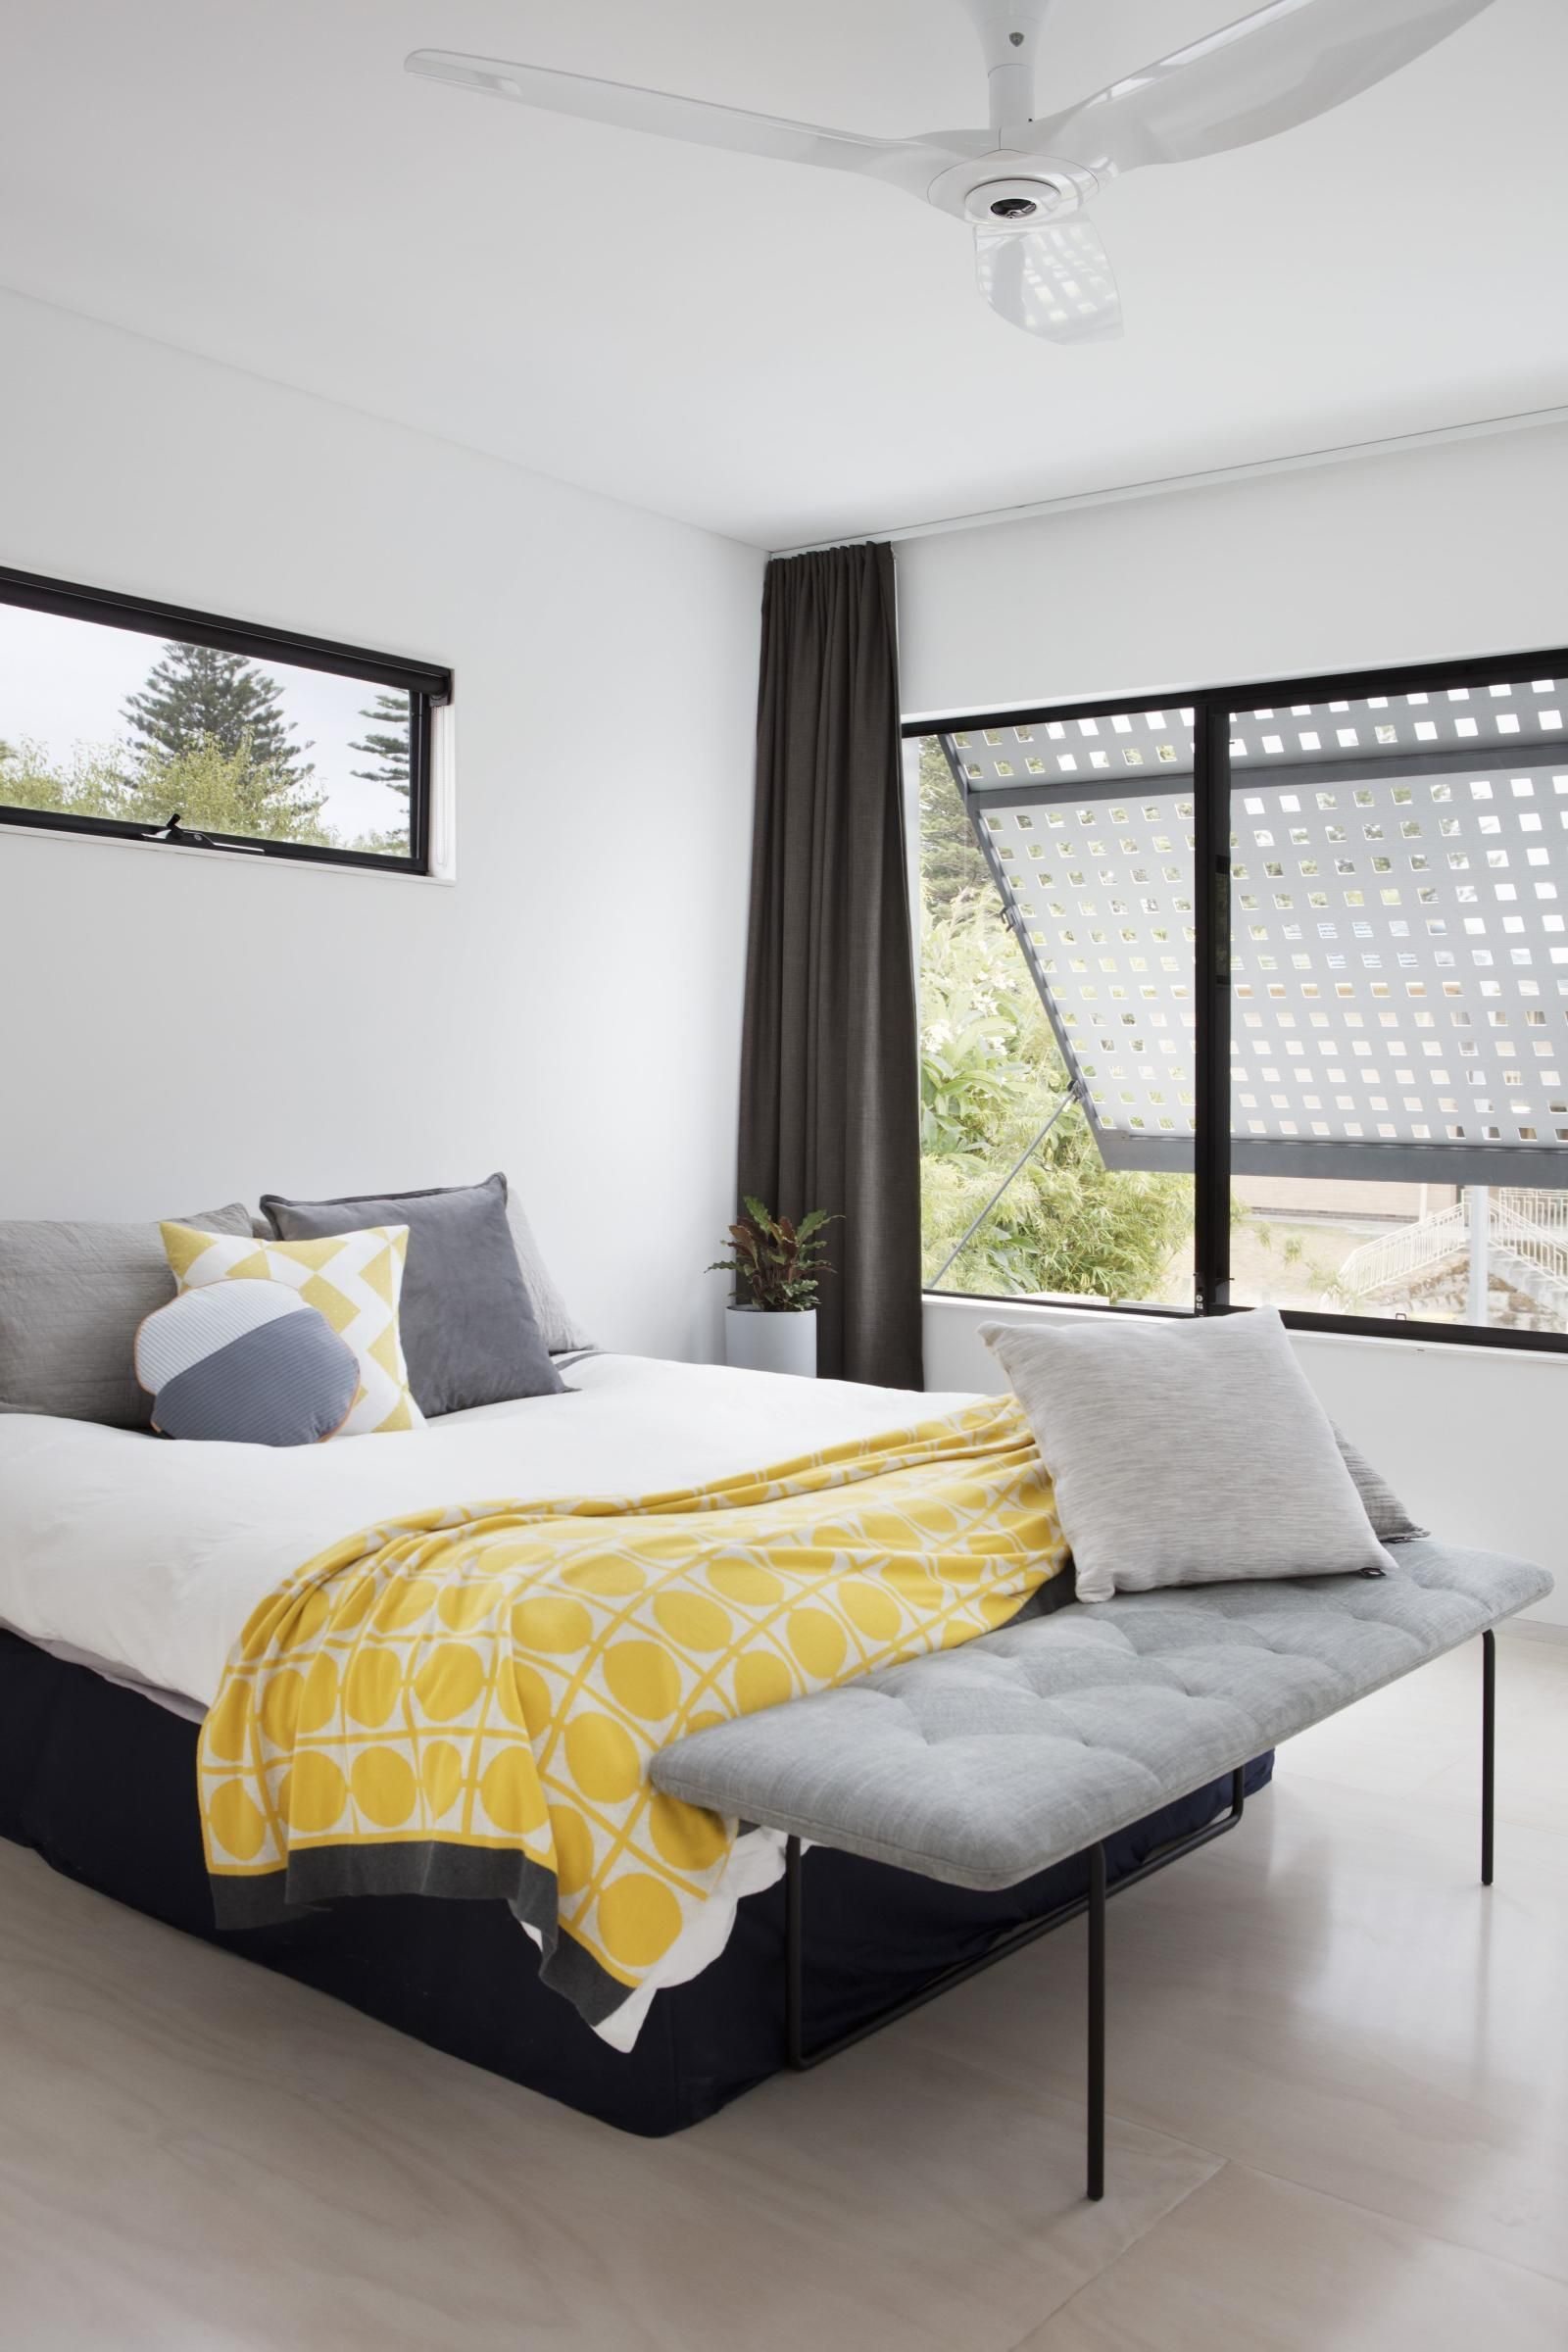 Bedroom Detail  Blinco St Residence By Philip Stejskal Architecture,